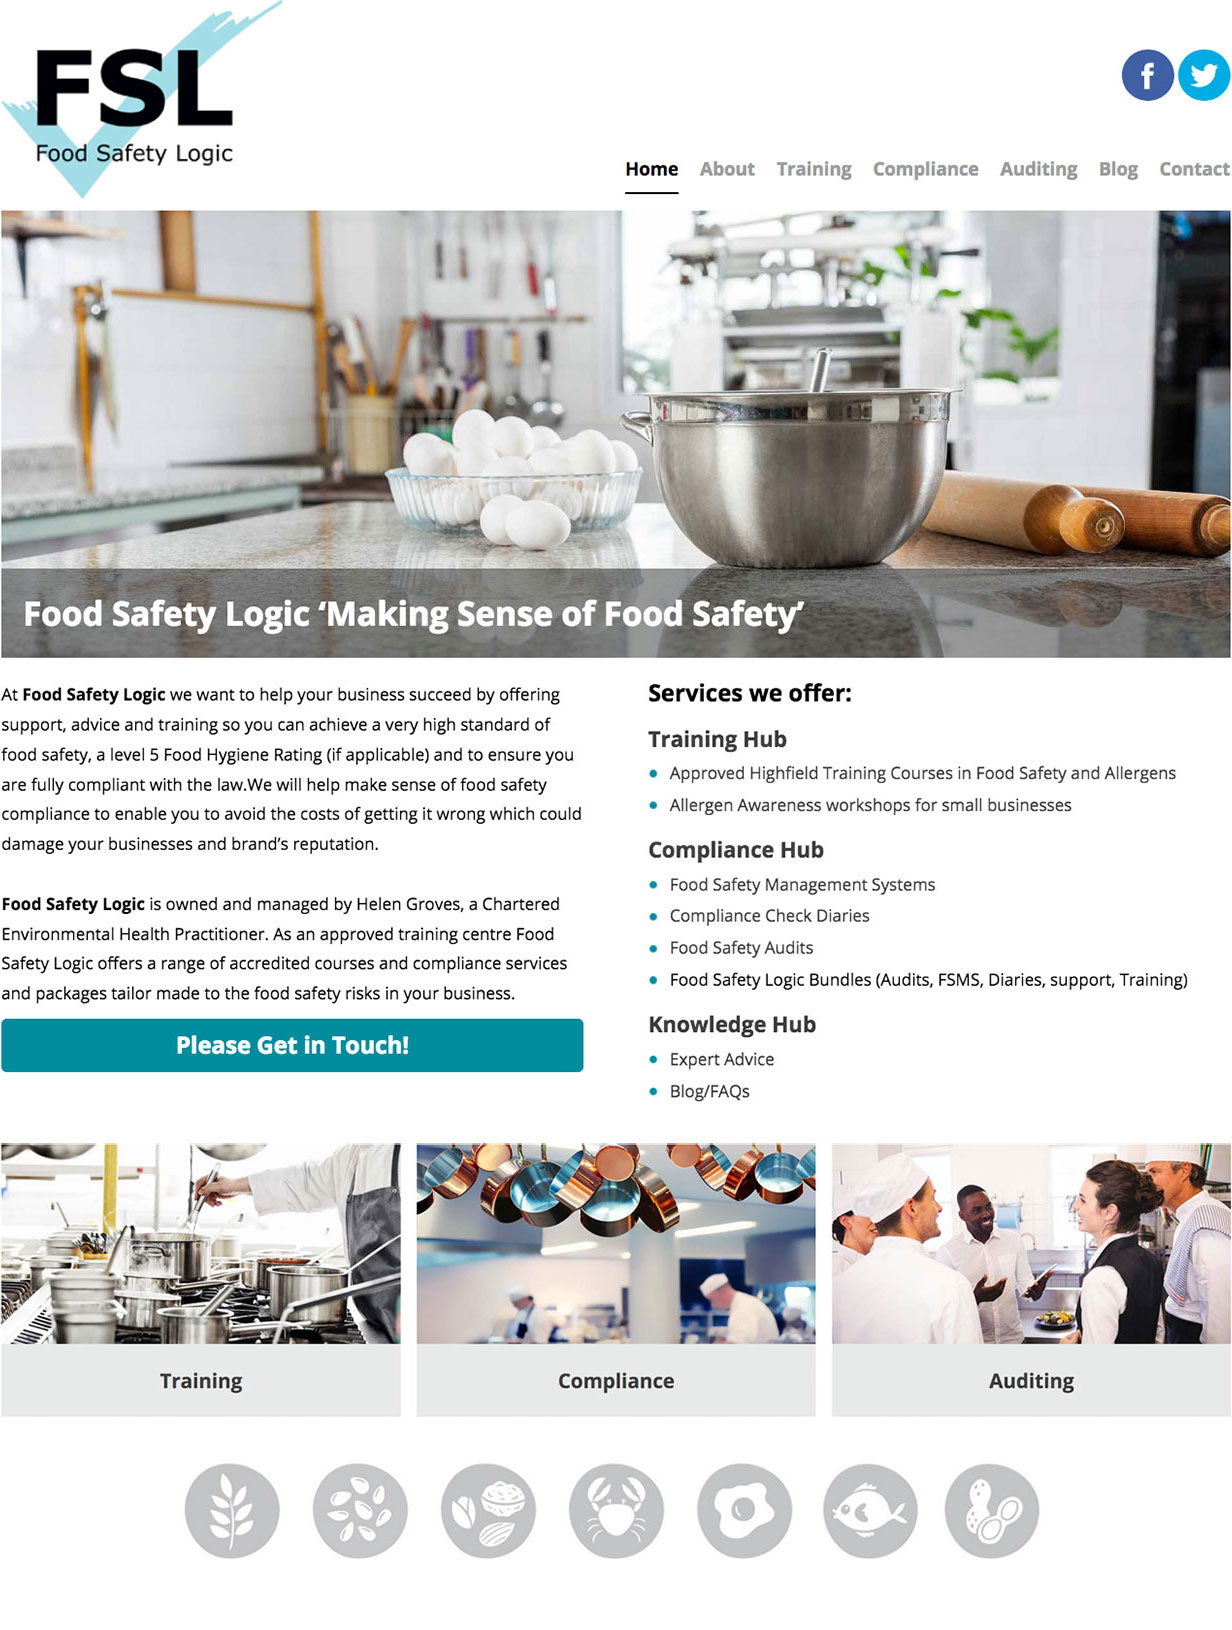 Food Safety Logic - Making sense of Food Safety